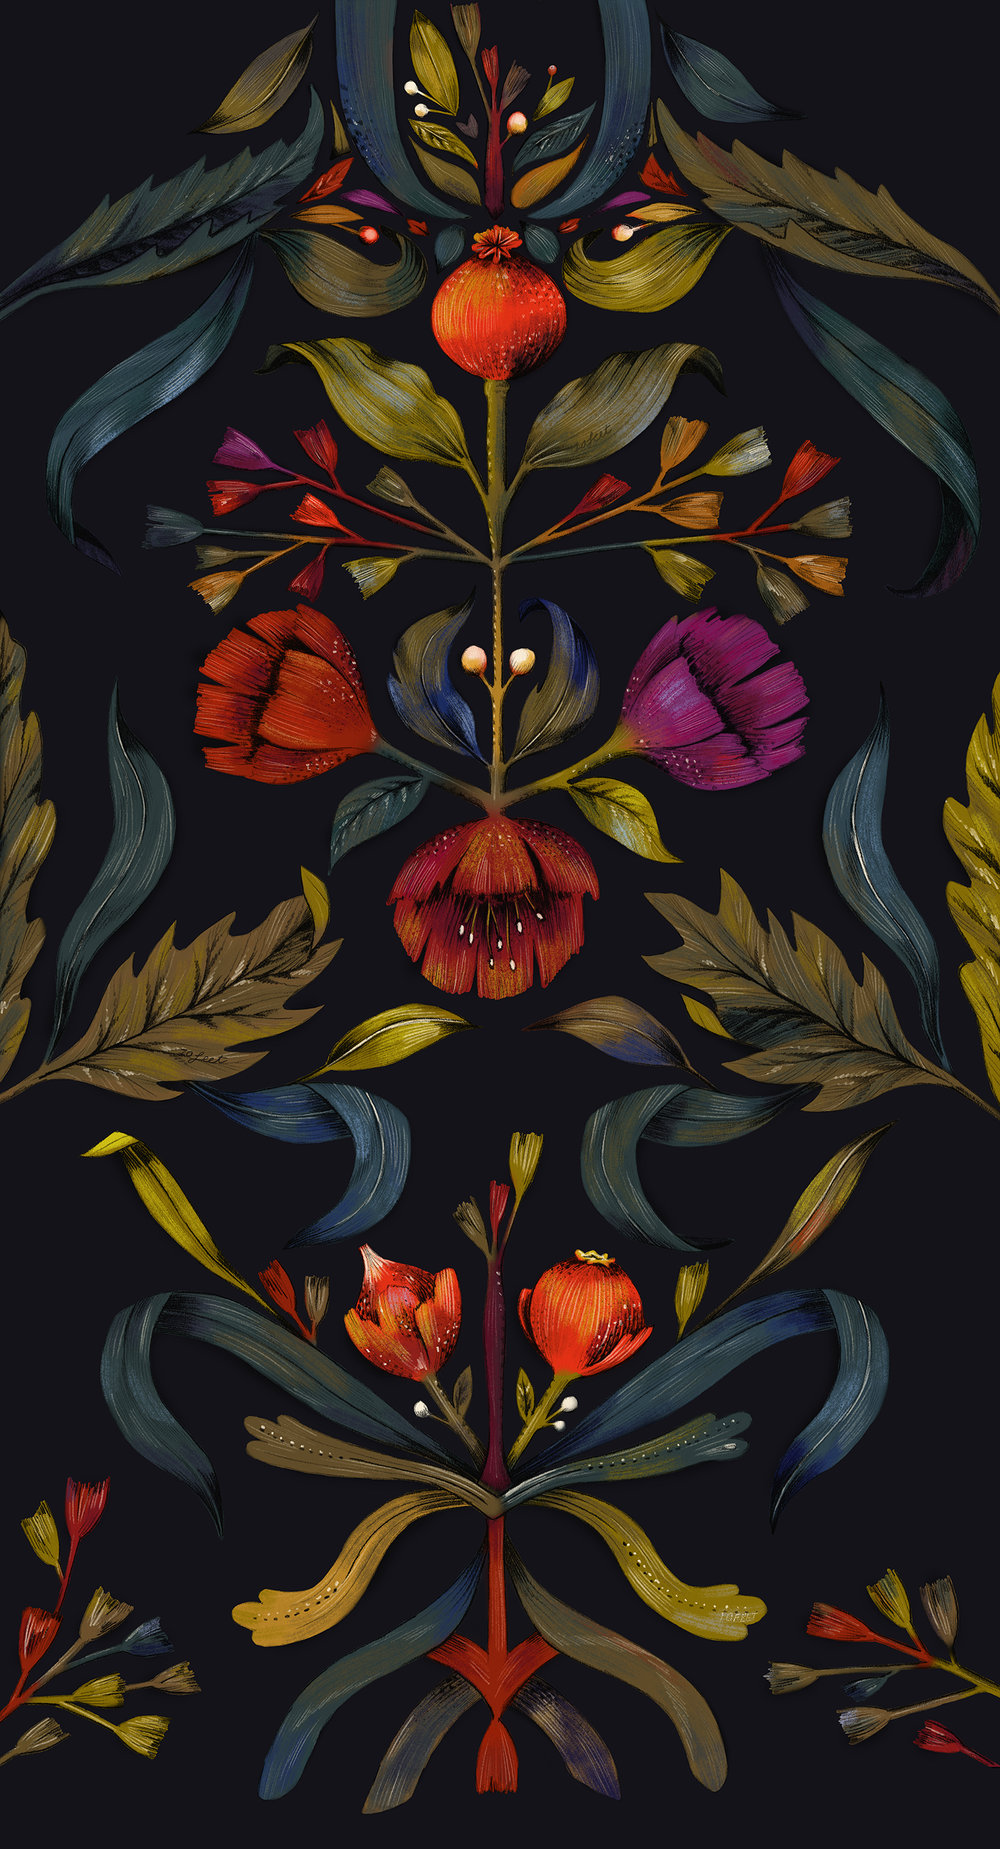 fig 1. The placement print, inspired by folk art, art deco and Golden Age paintings